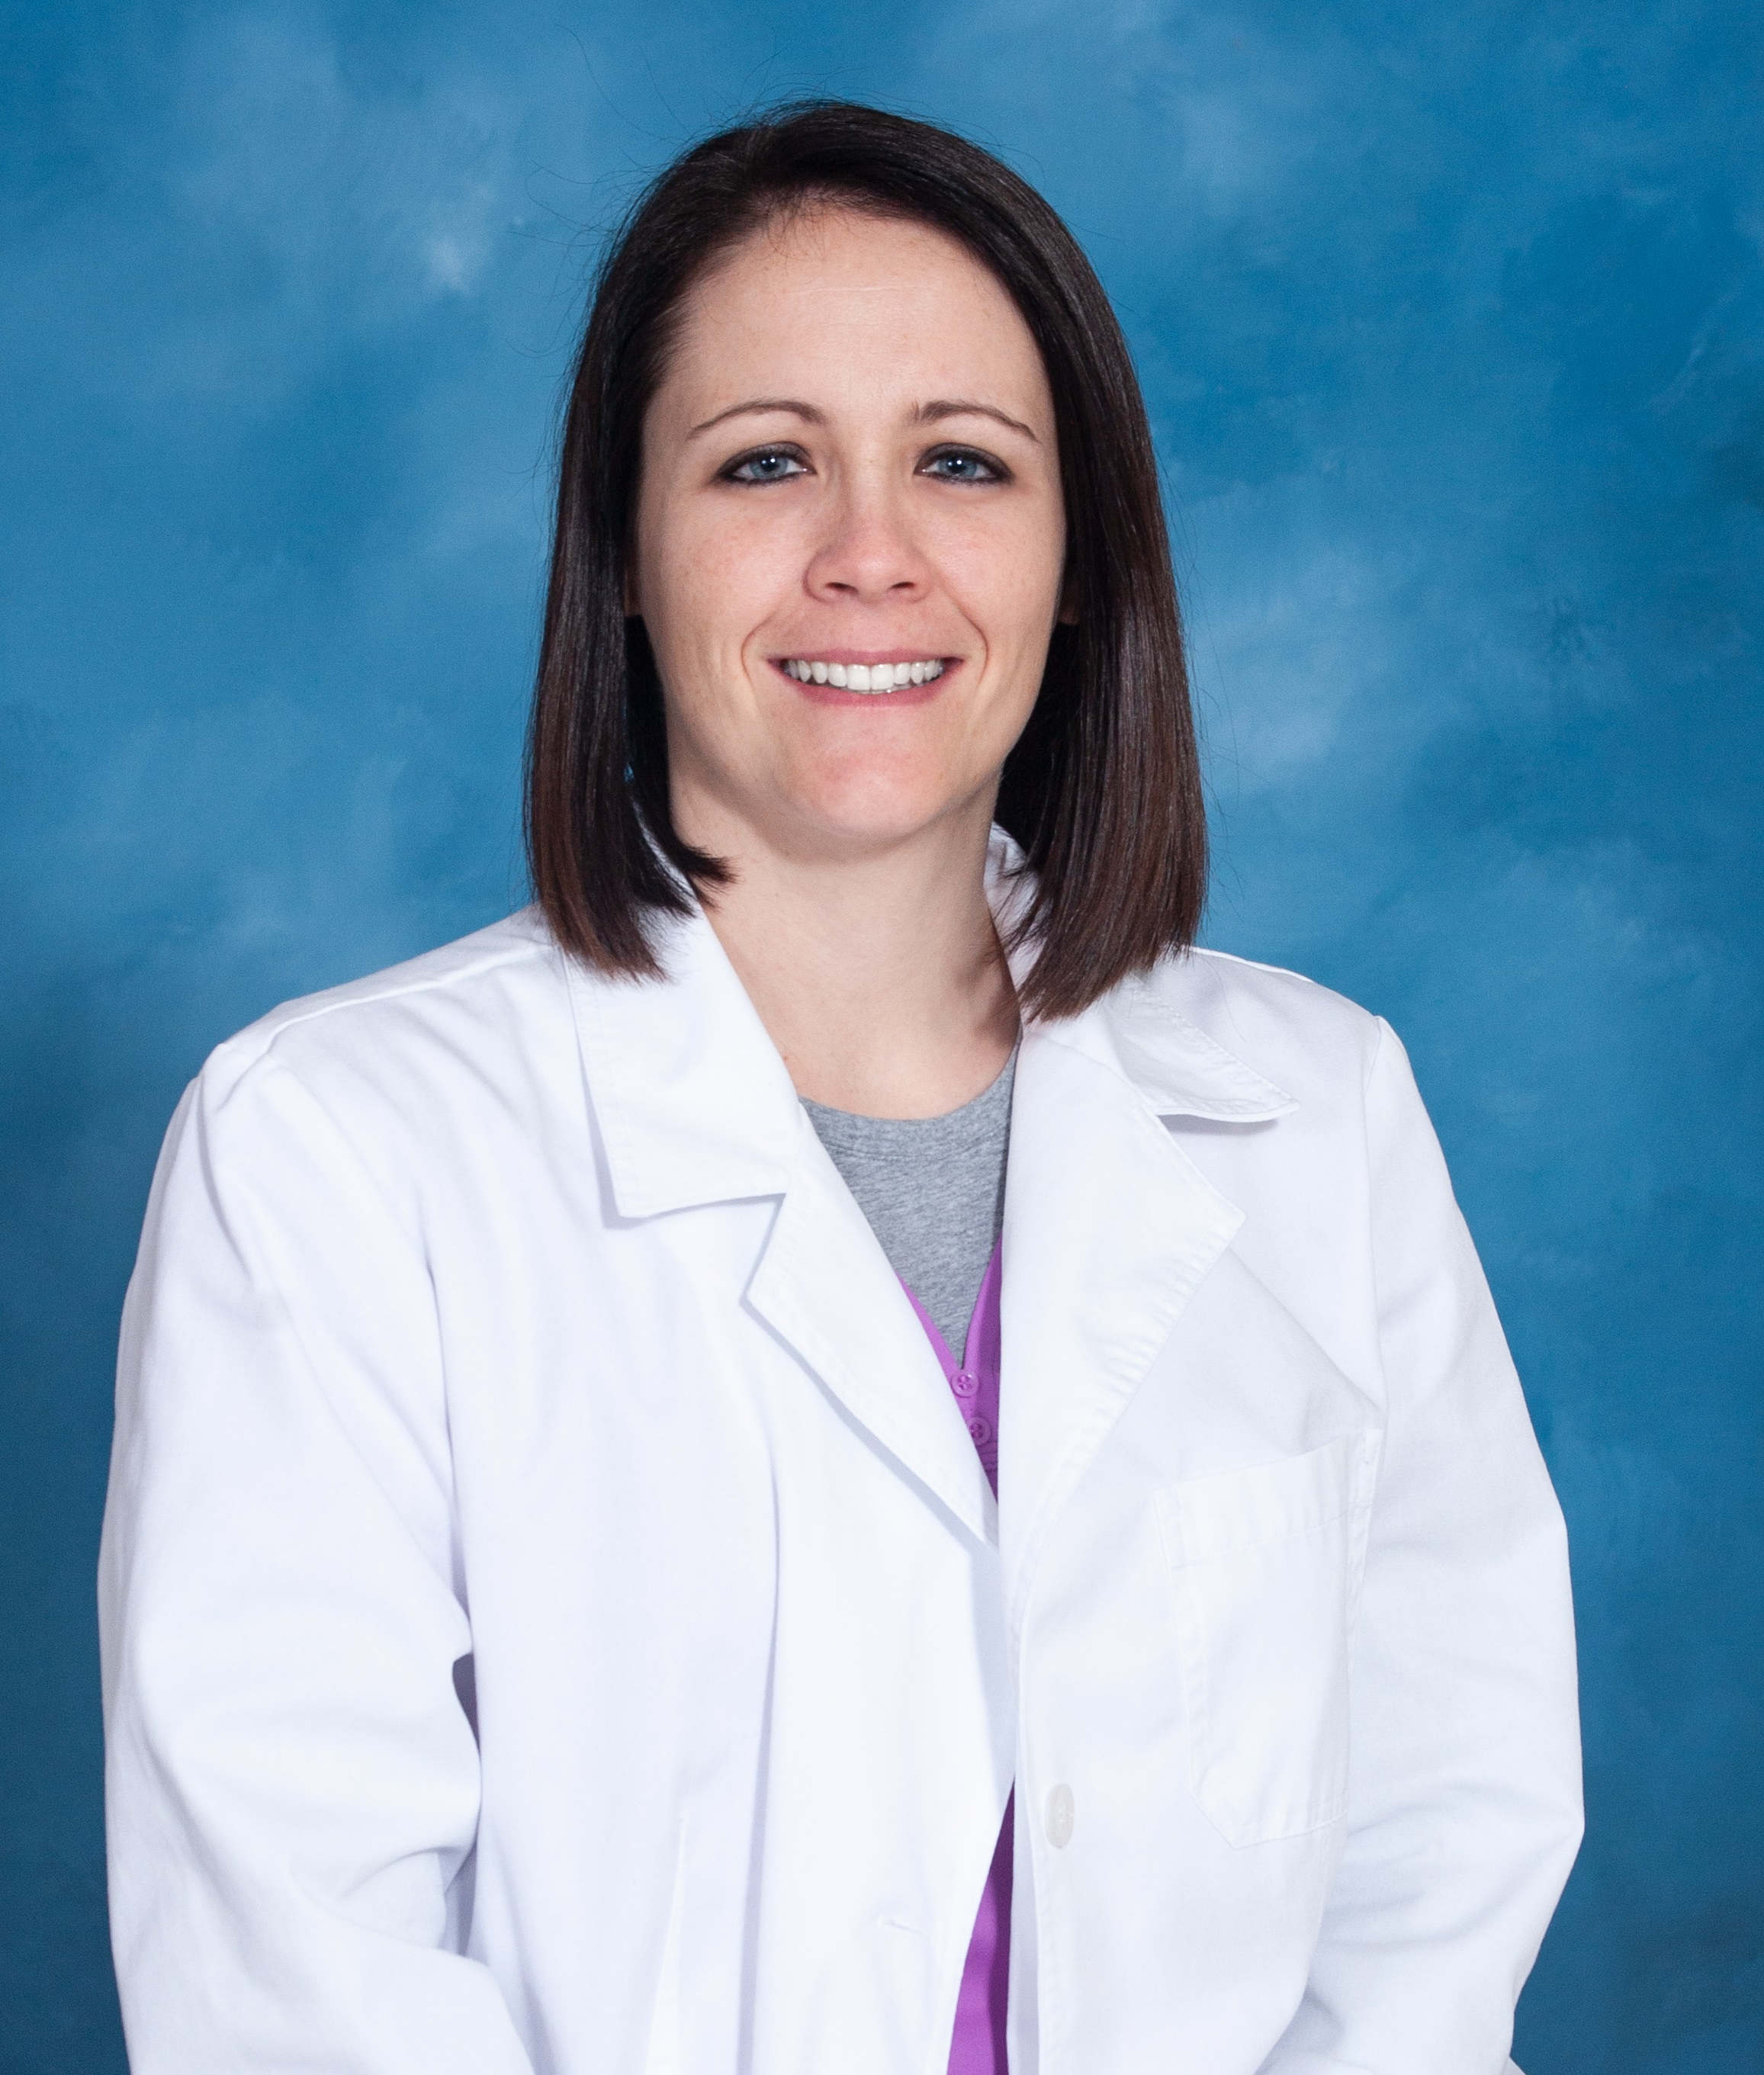 Julie Fossett, NP of the primary care team at Crossville Medical Group